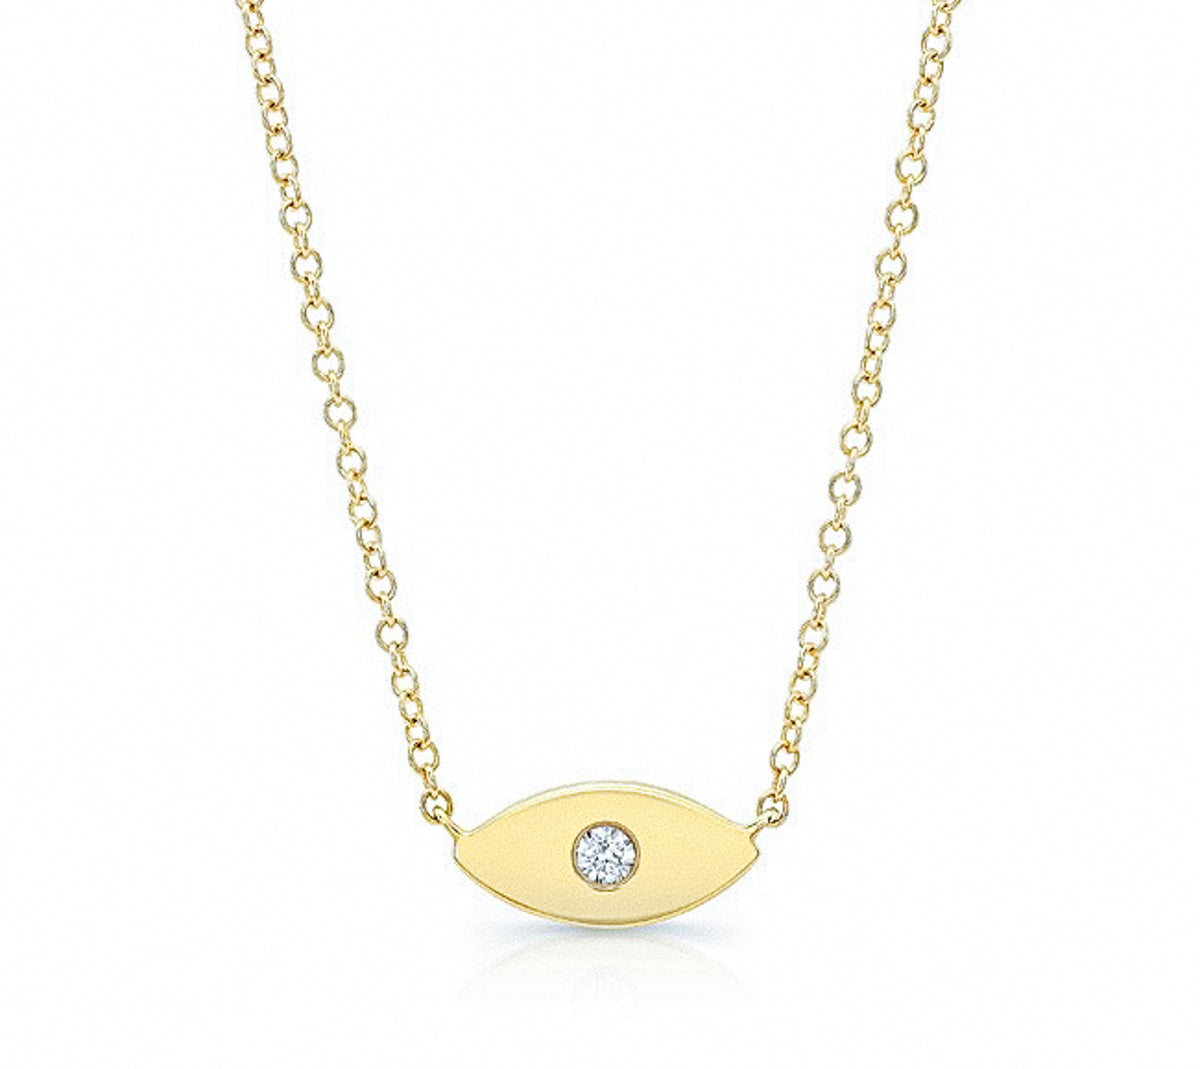 Solid Gold with Diamond Evil Eye Talisman Necklace